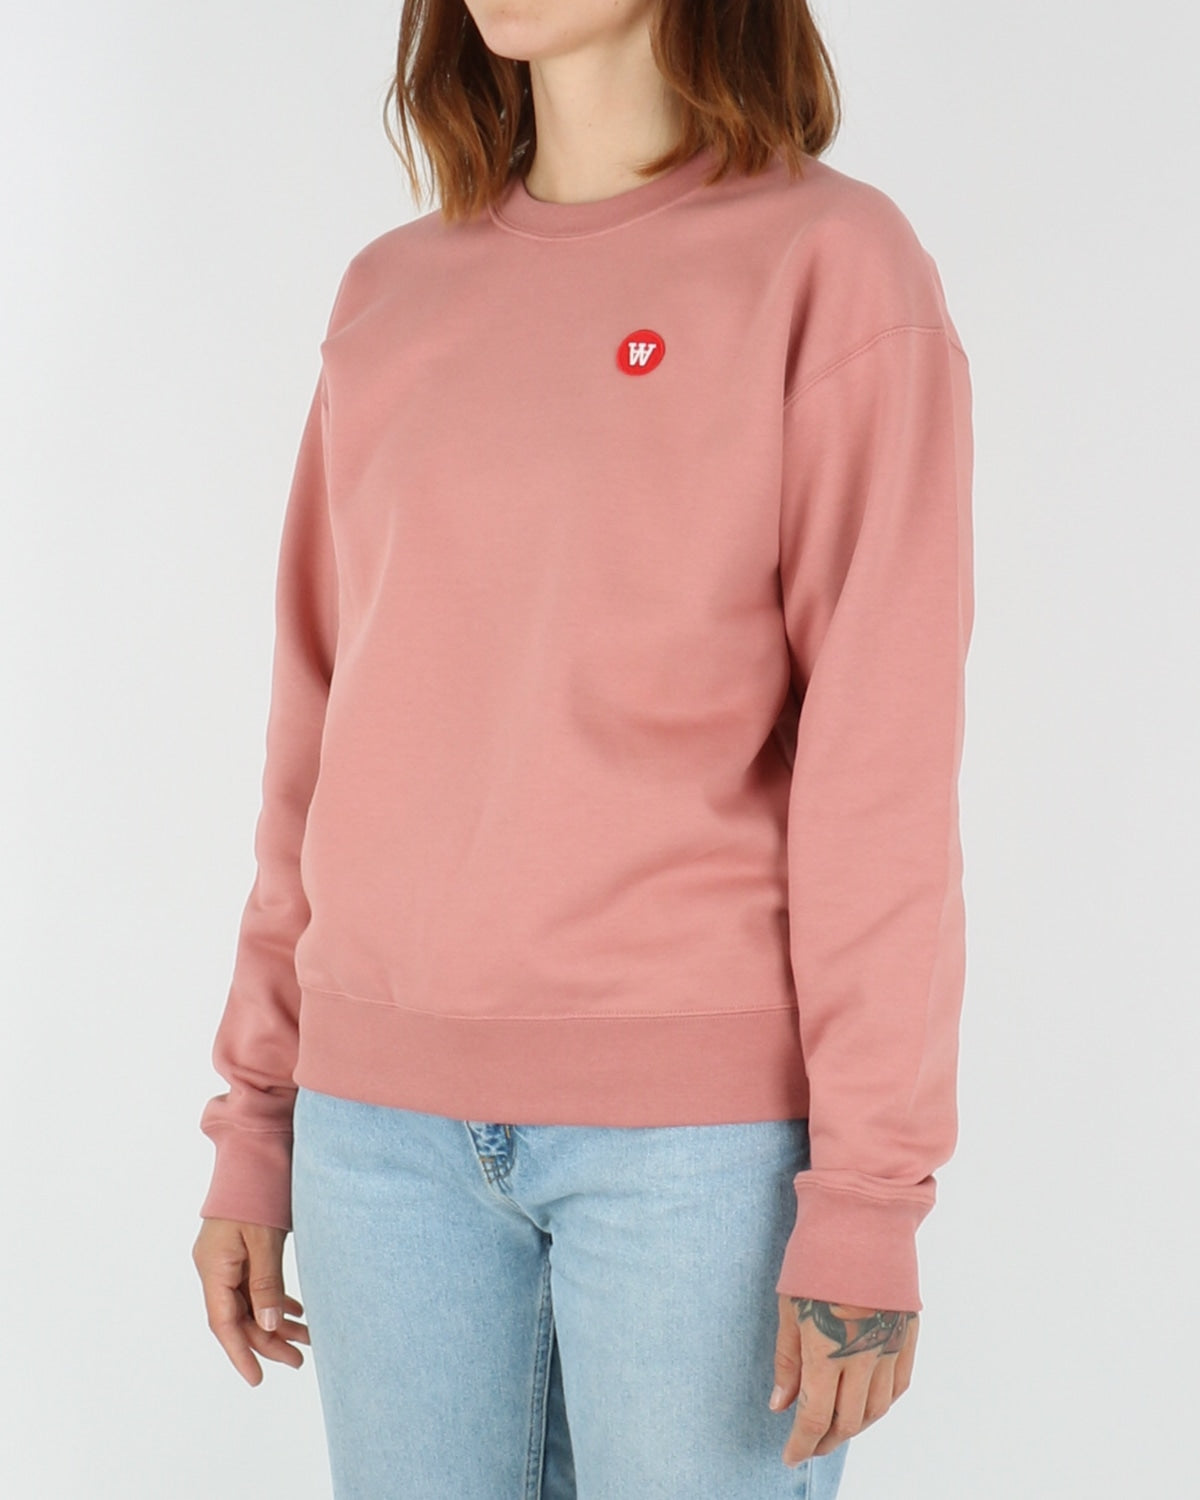 wood wood_jess sweatshirt_dark rose_view_2_3